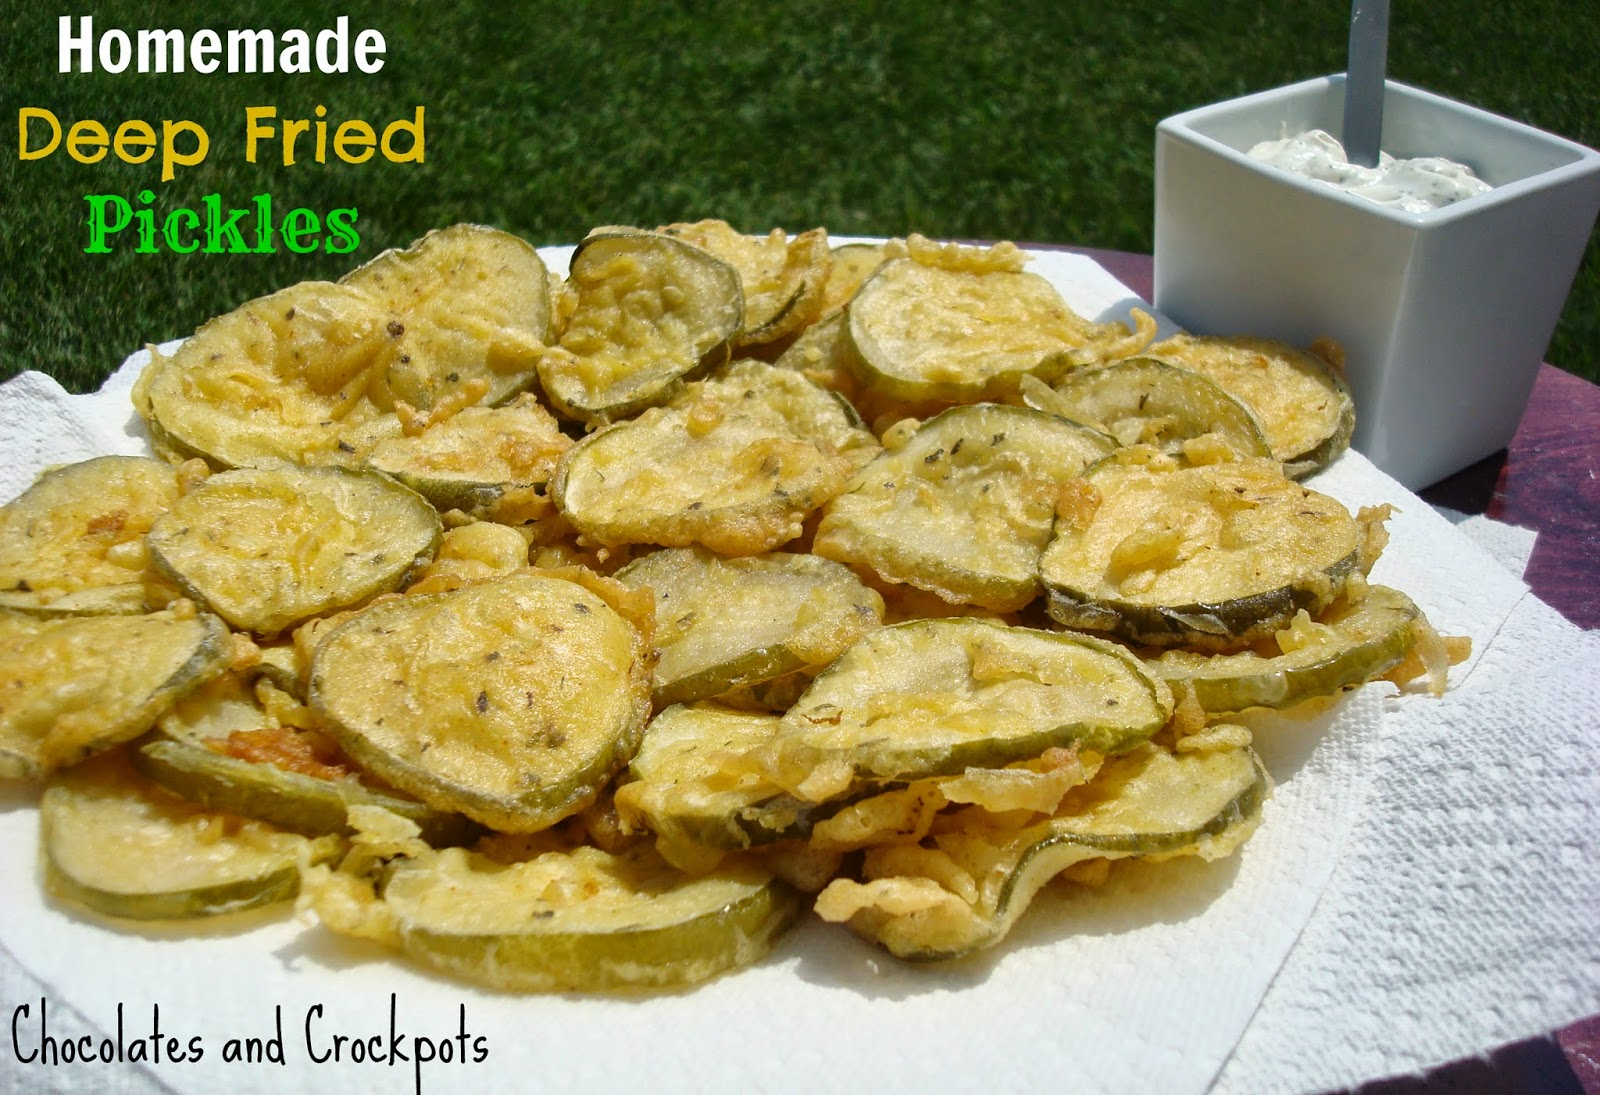 Chocolates and Crockpots: Homemade Deep Fried Pickles